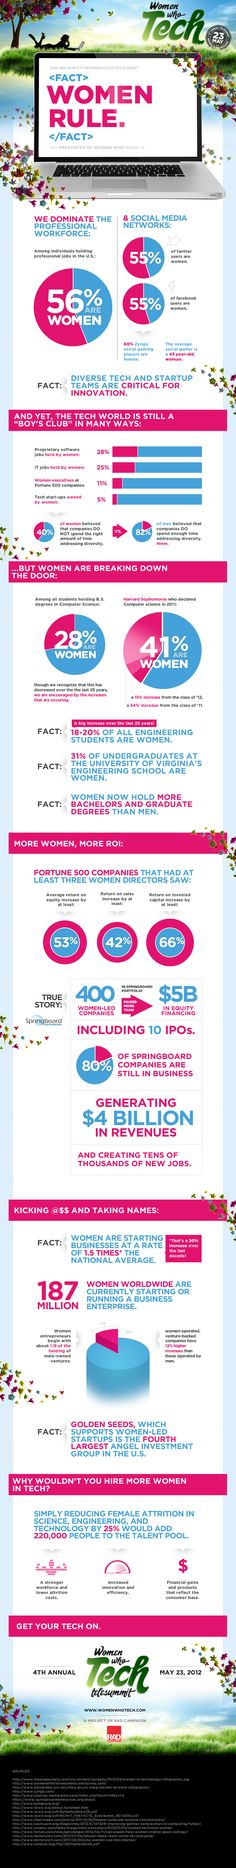 Women who #Tech from Women In #Infographic: Tech - There is a definite need for a better balance between males and females in #digitalmarketing